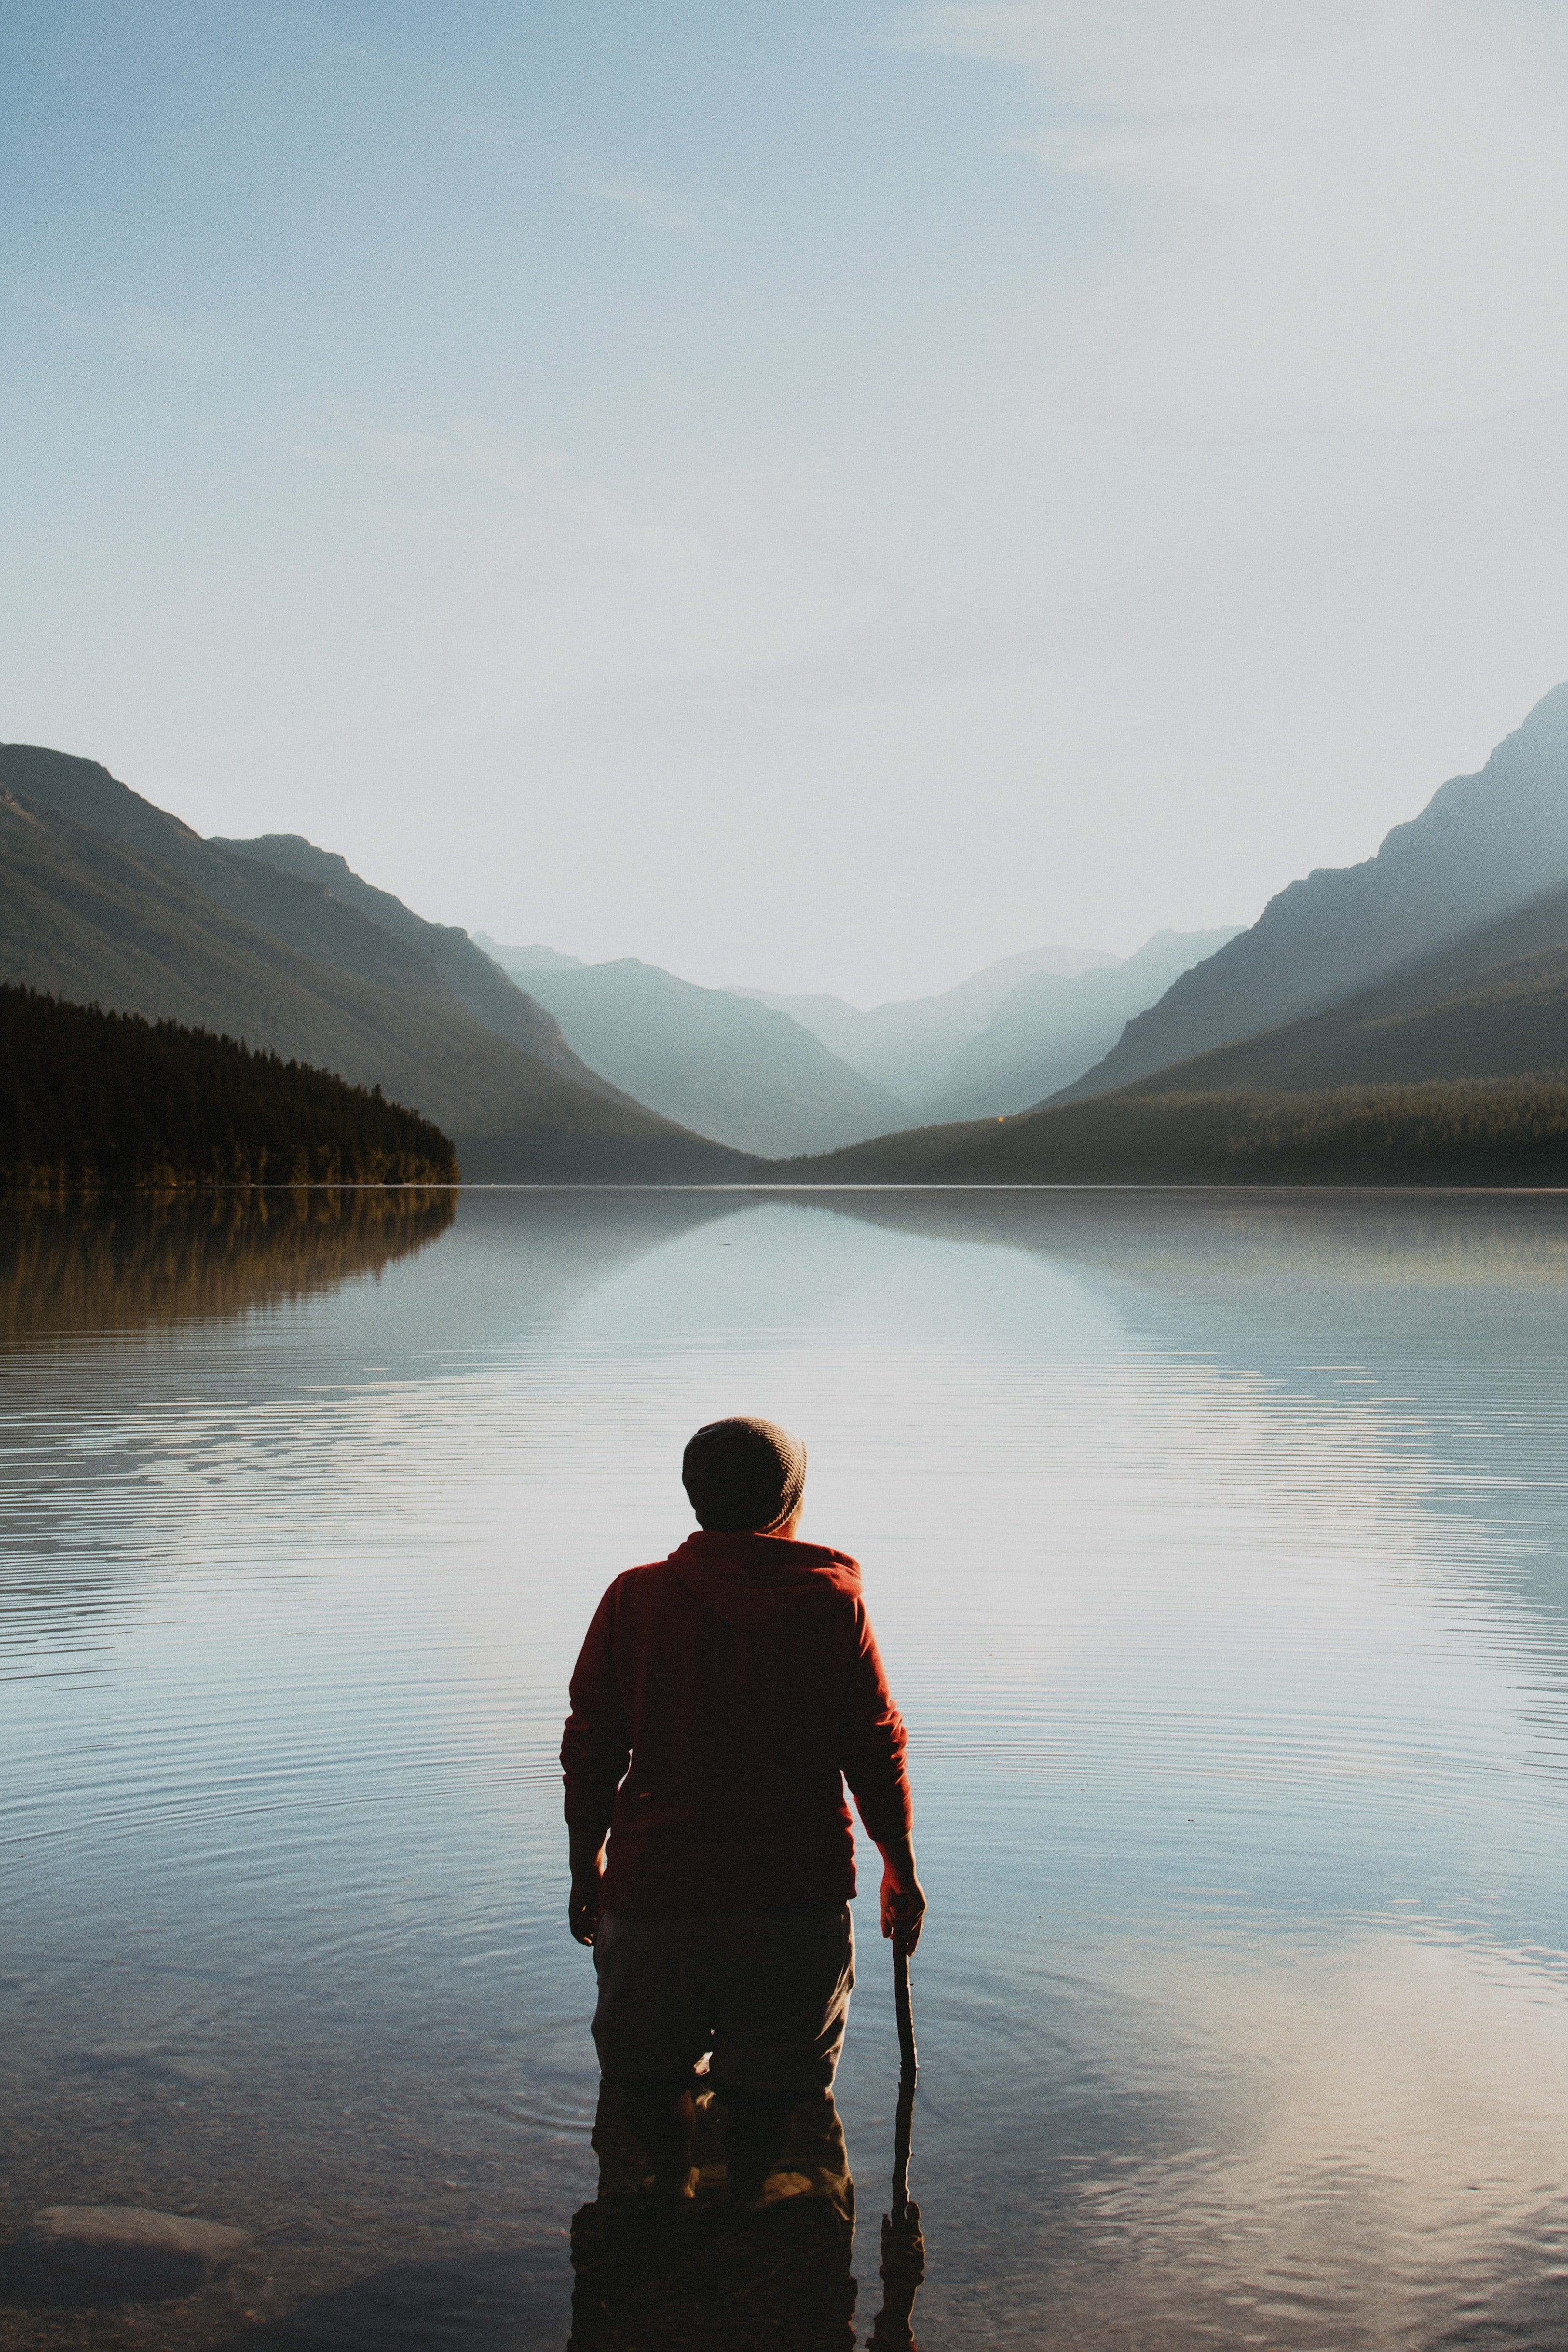 person standing on the lake in the middle of mountains